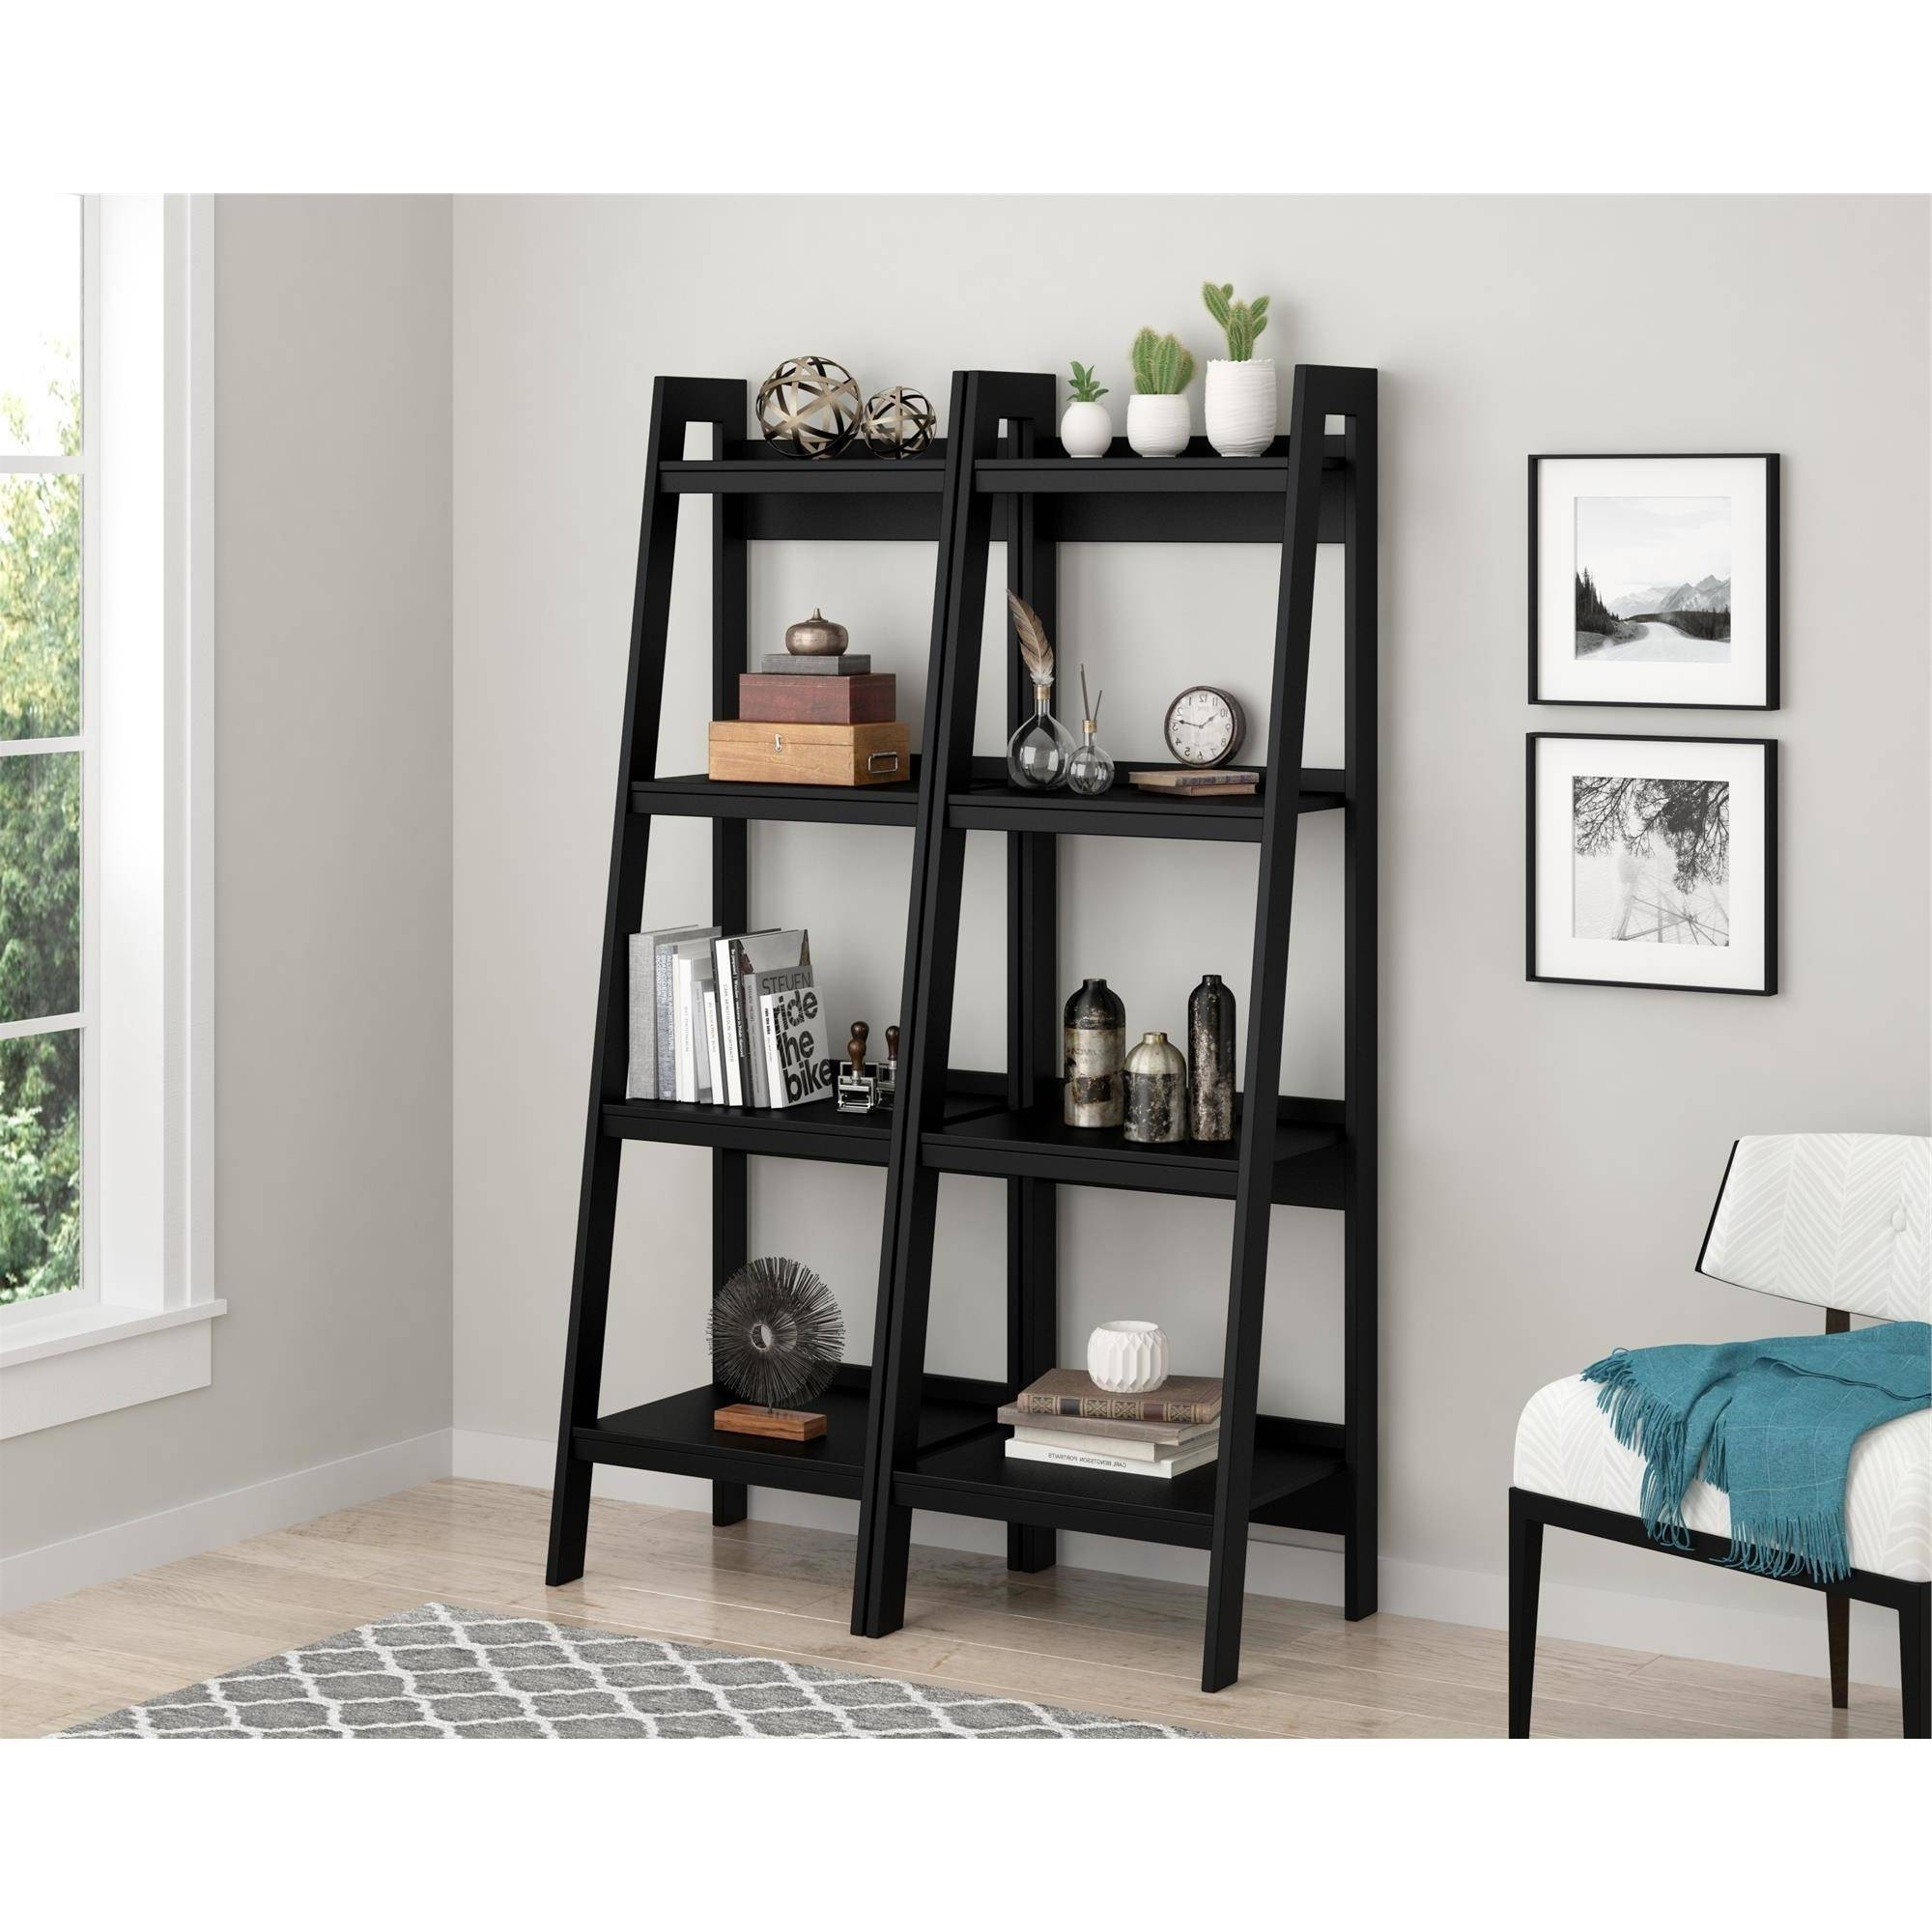 Newest Bed Bath And Beyond Bookcases With Regard To Ameriwood Home Lawrence 4 Shelf Ladder Bookcase Bundle, Black (Set (View 12 of 15)